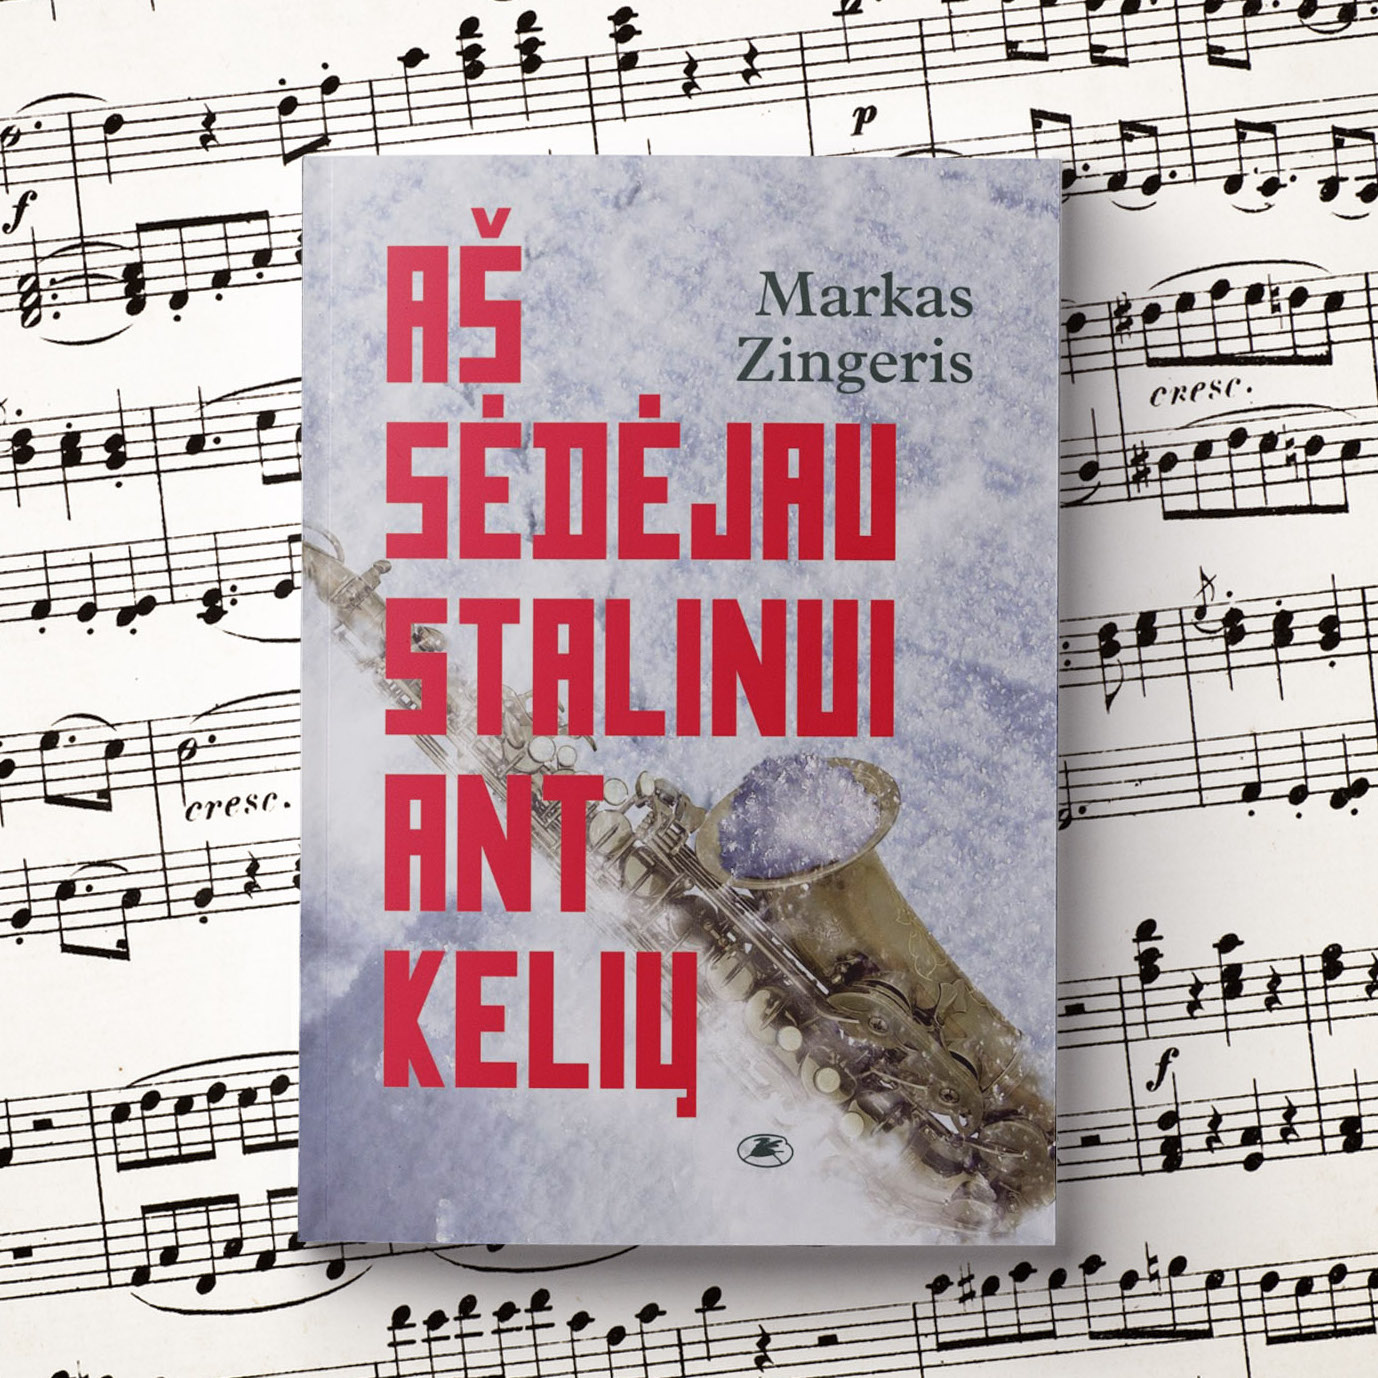 I Sat On Stalins Lap By Markas Zingeris The Starling Bureau